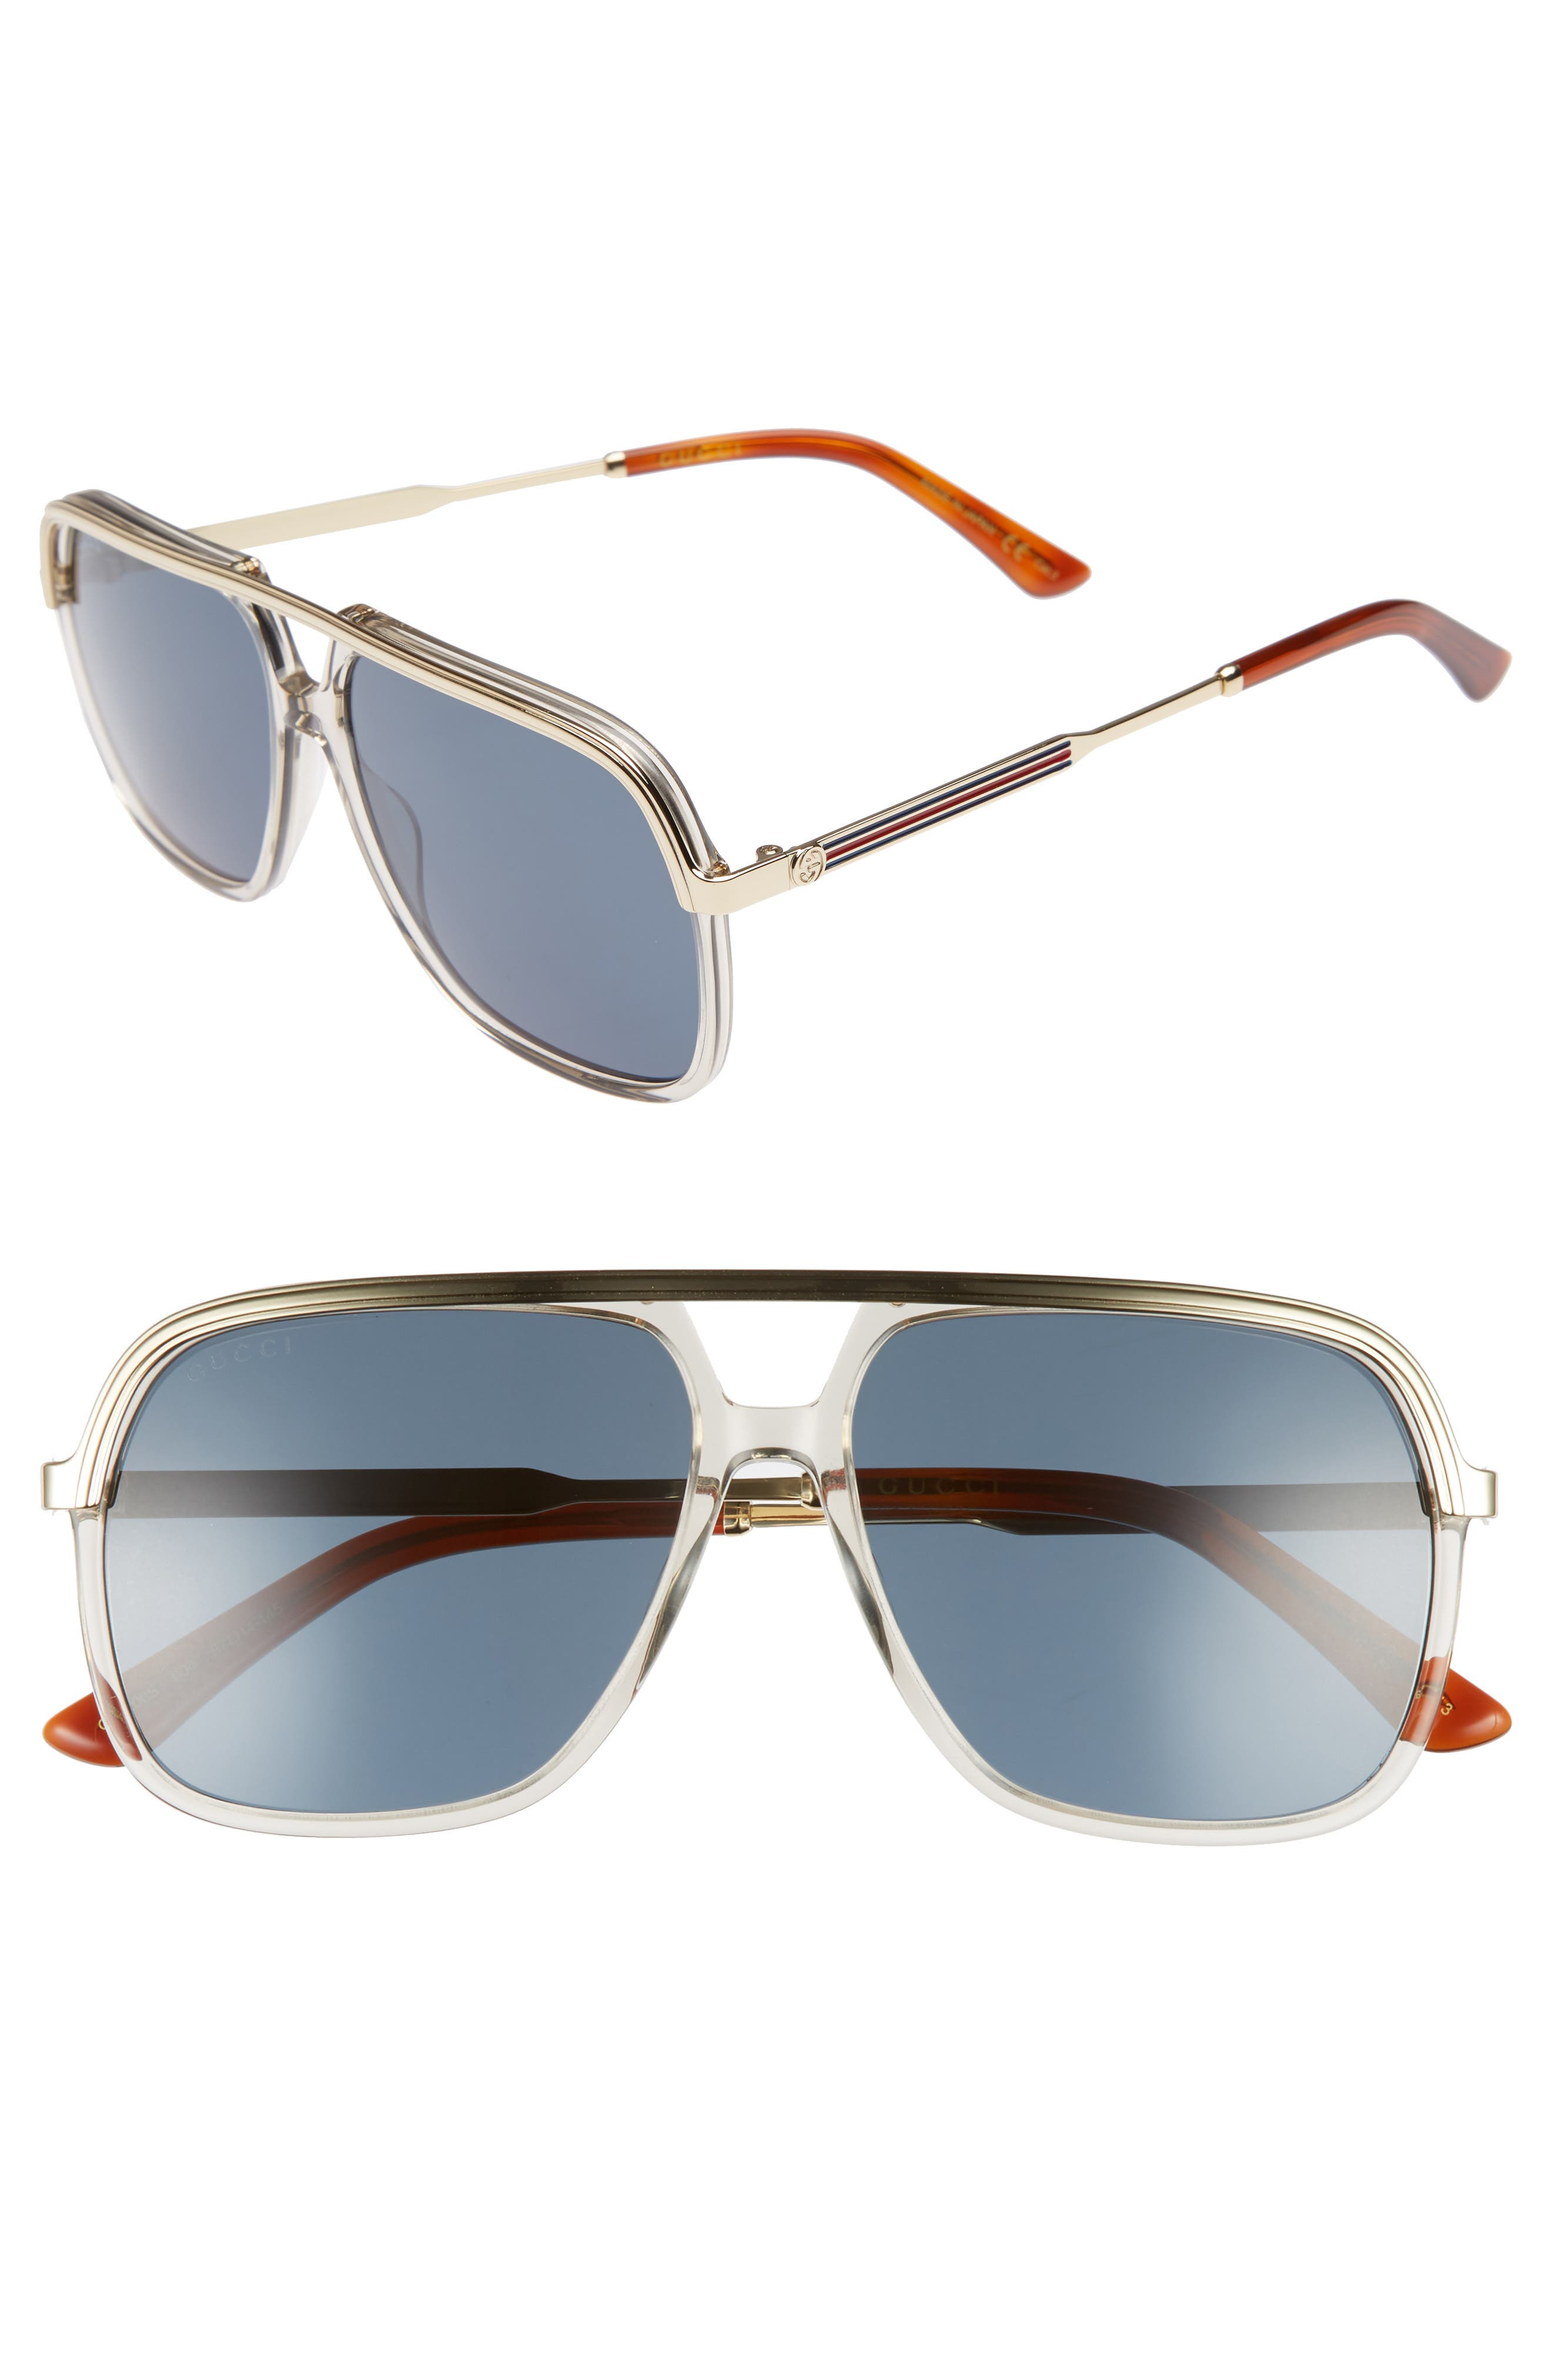 Alternate Image 1 Selected - Gucci 57mm Aviator Sunglasses